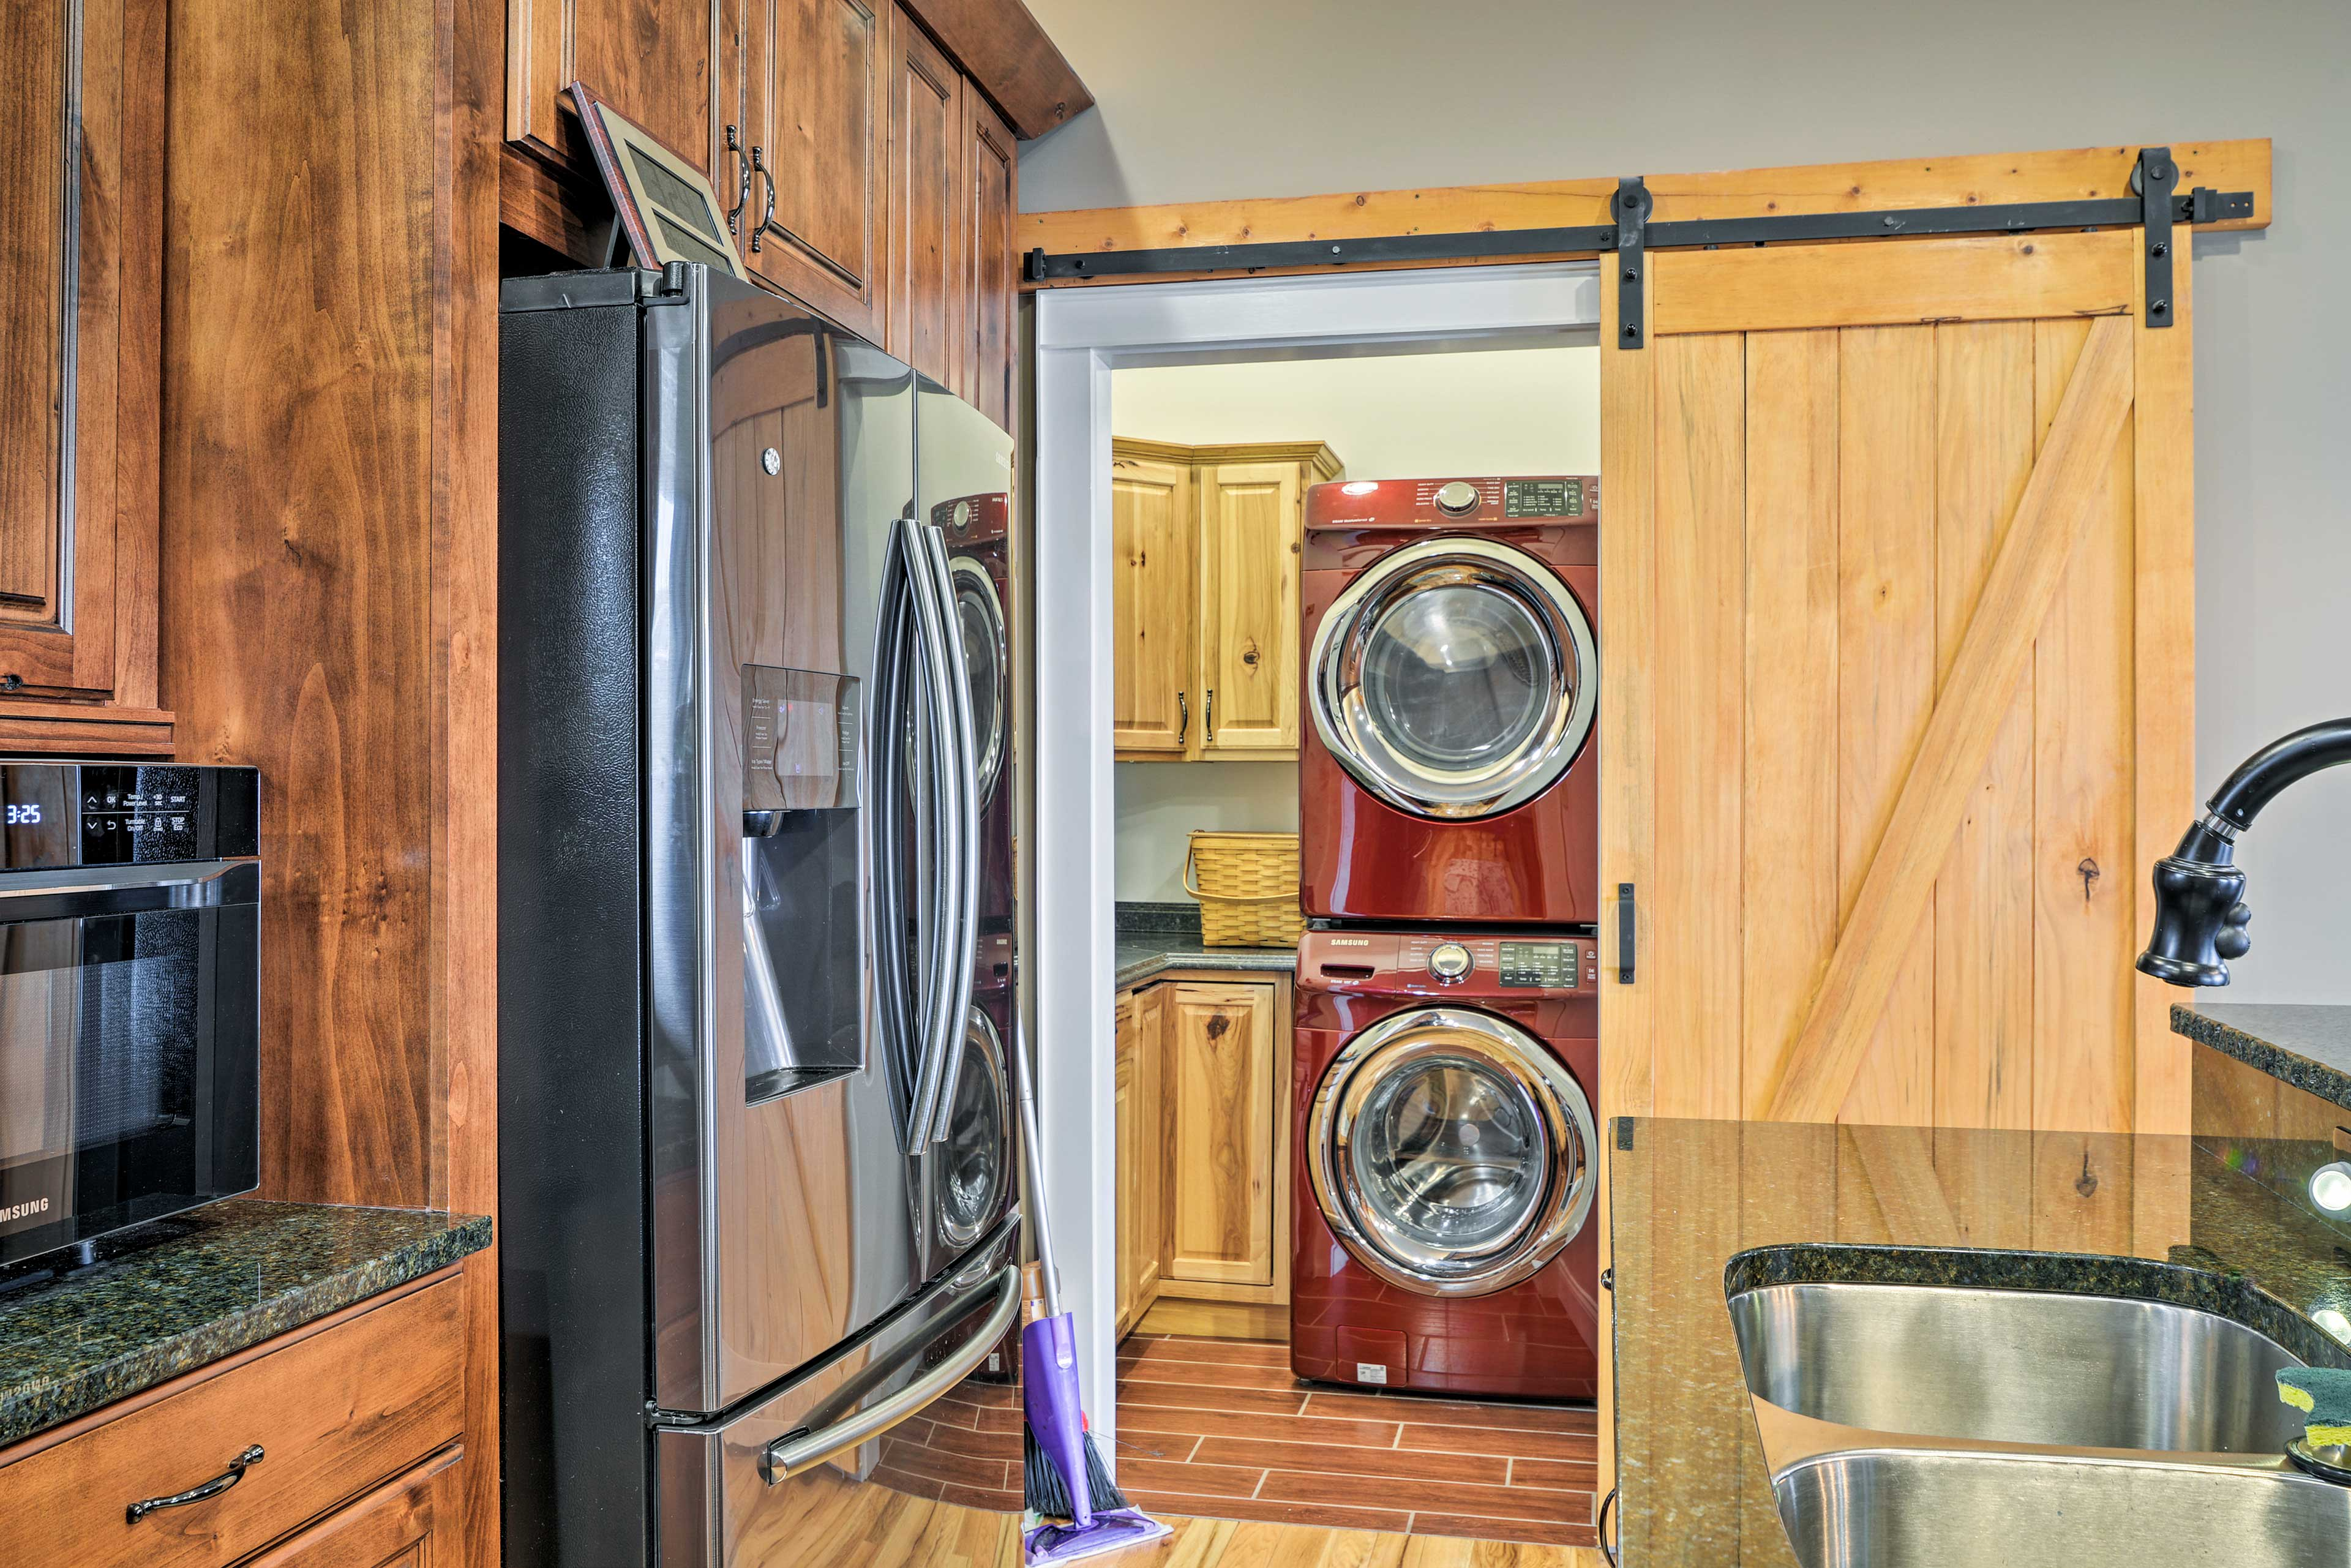 Keep your clothes fresh and clean with the home's washer and dryer.